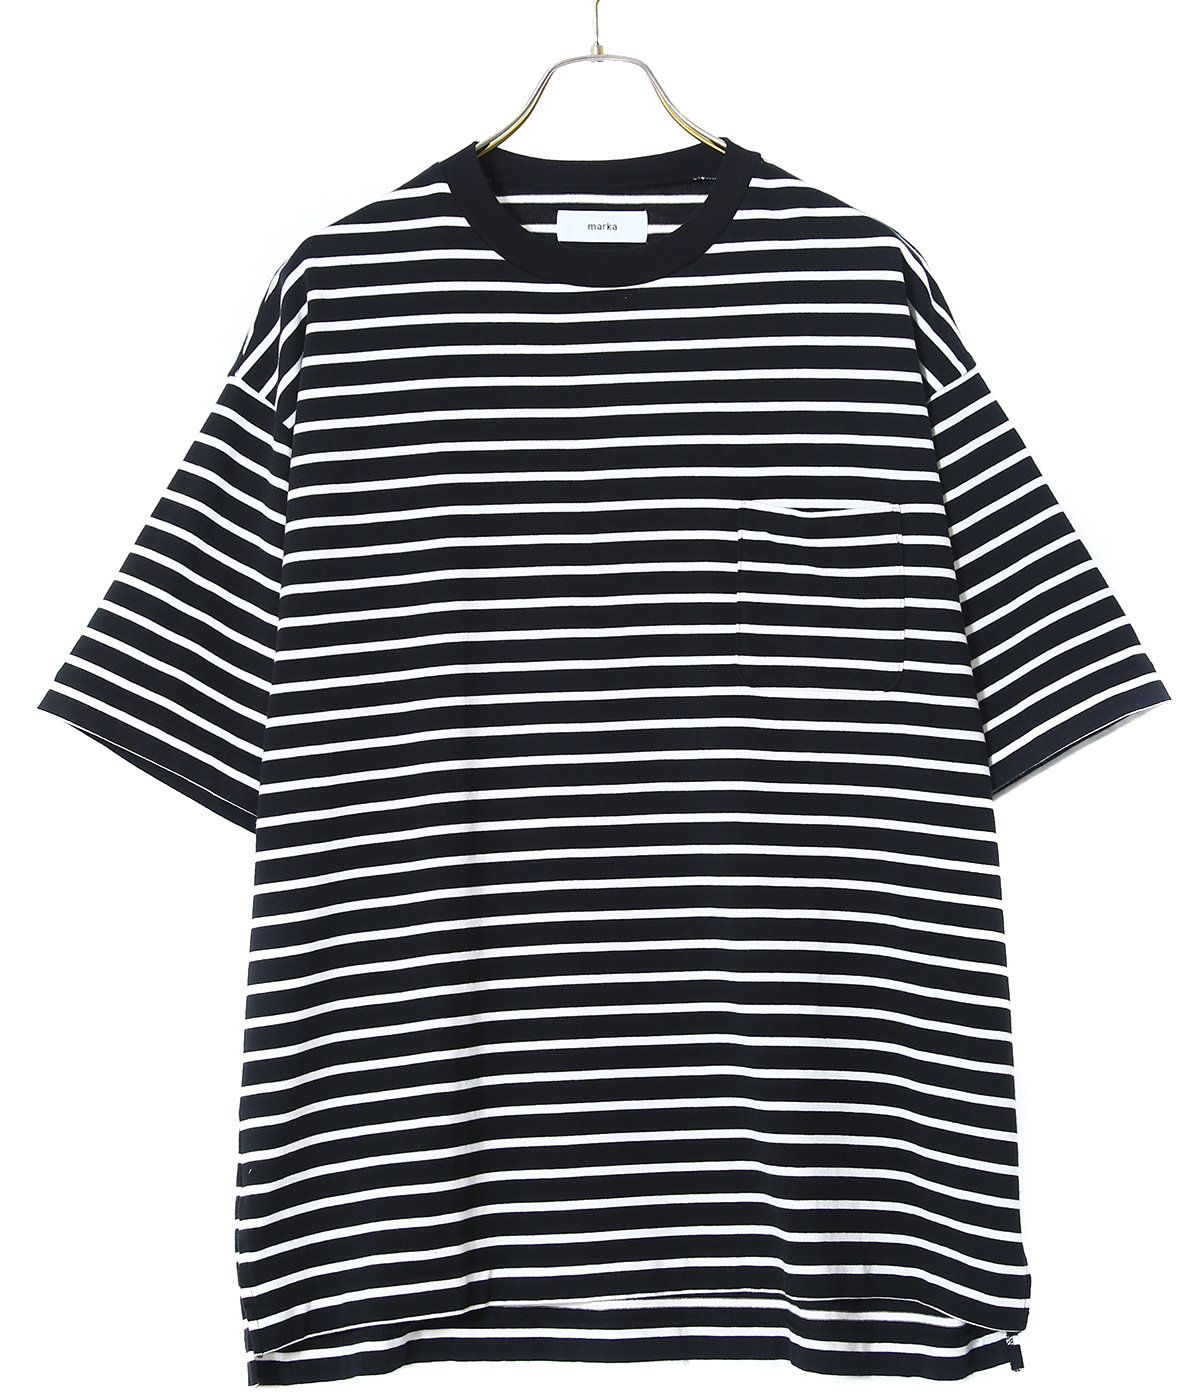 POCKET TEE S/S - cotton knit boder -